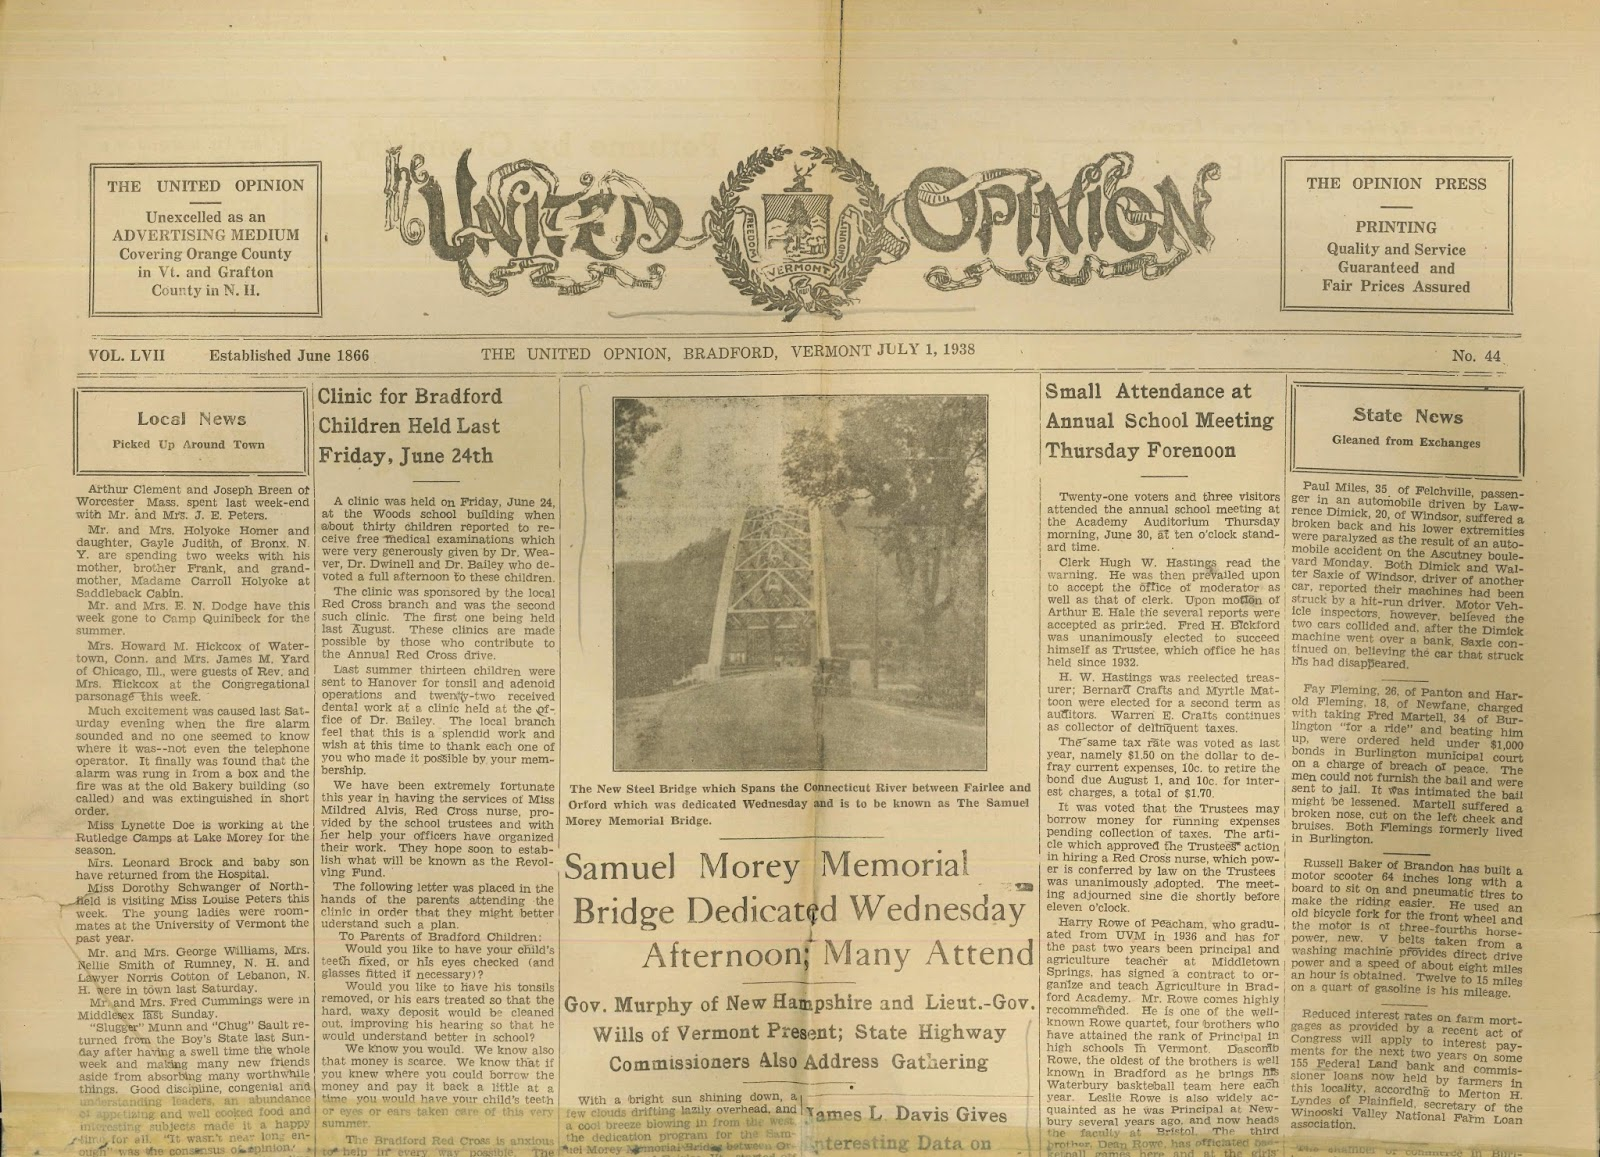 A newspaper including a piece on the Samuel Morey Memorial Bridge dedication.